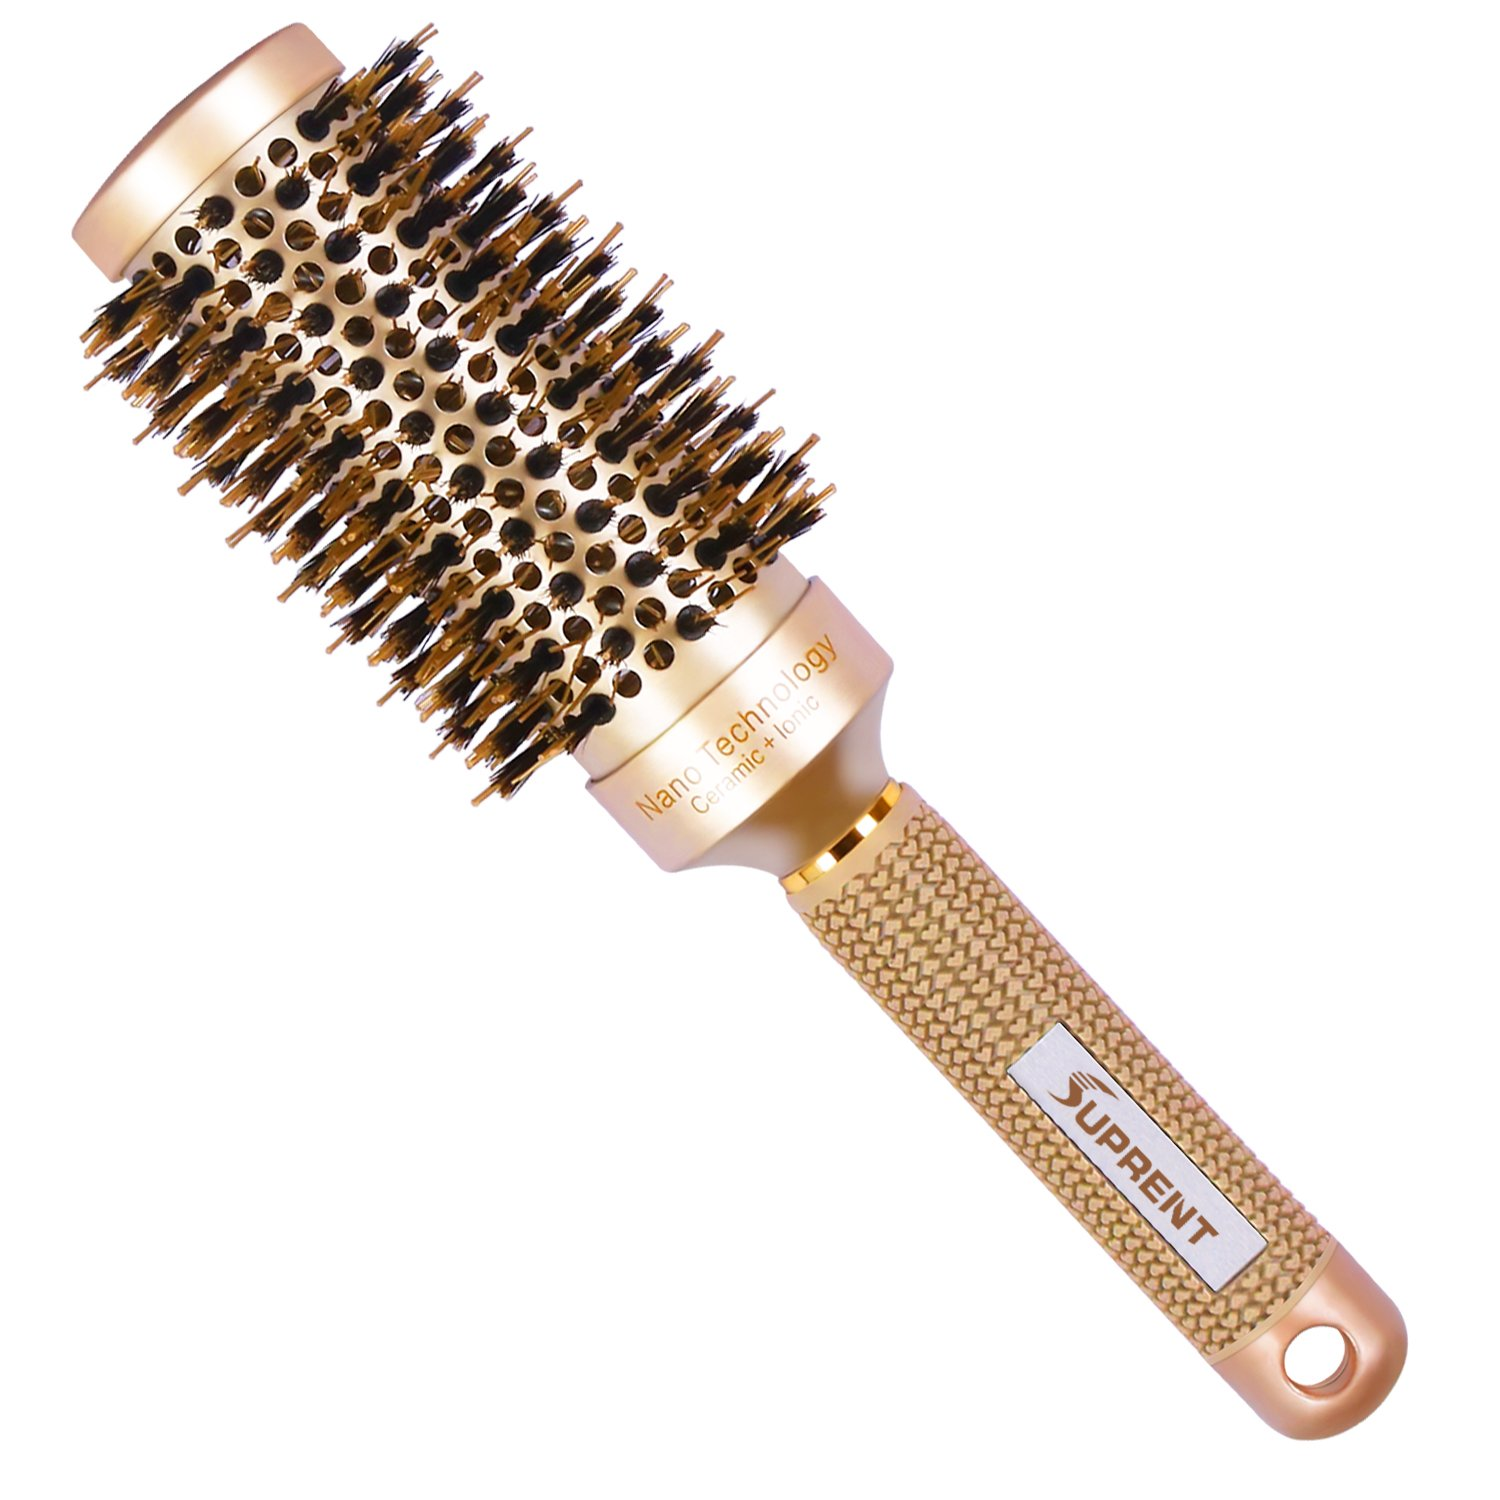 SUPRENT Ceramic Round Brush for Blow Drying with Boar Bristle, Hair Brush for Hair Drying, Styling, Curling, Adding Hair Volume and Shine(2 inch) Adding Hair Volume and Shine(2 inch)